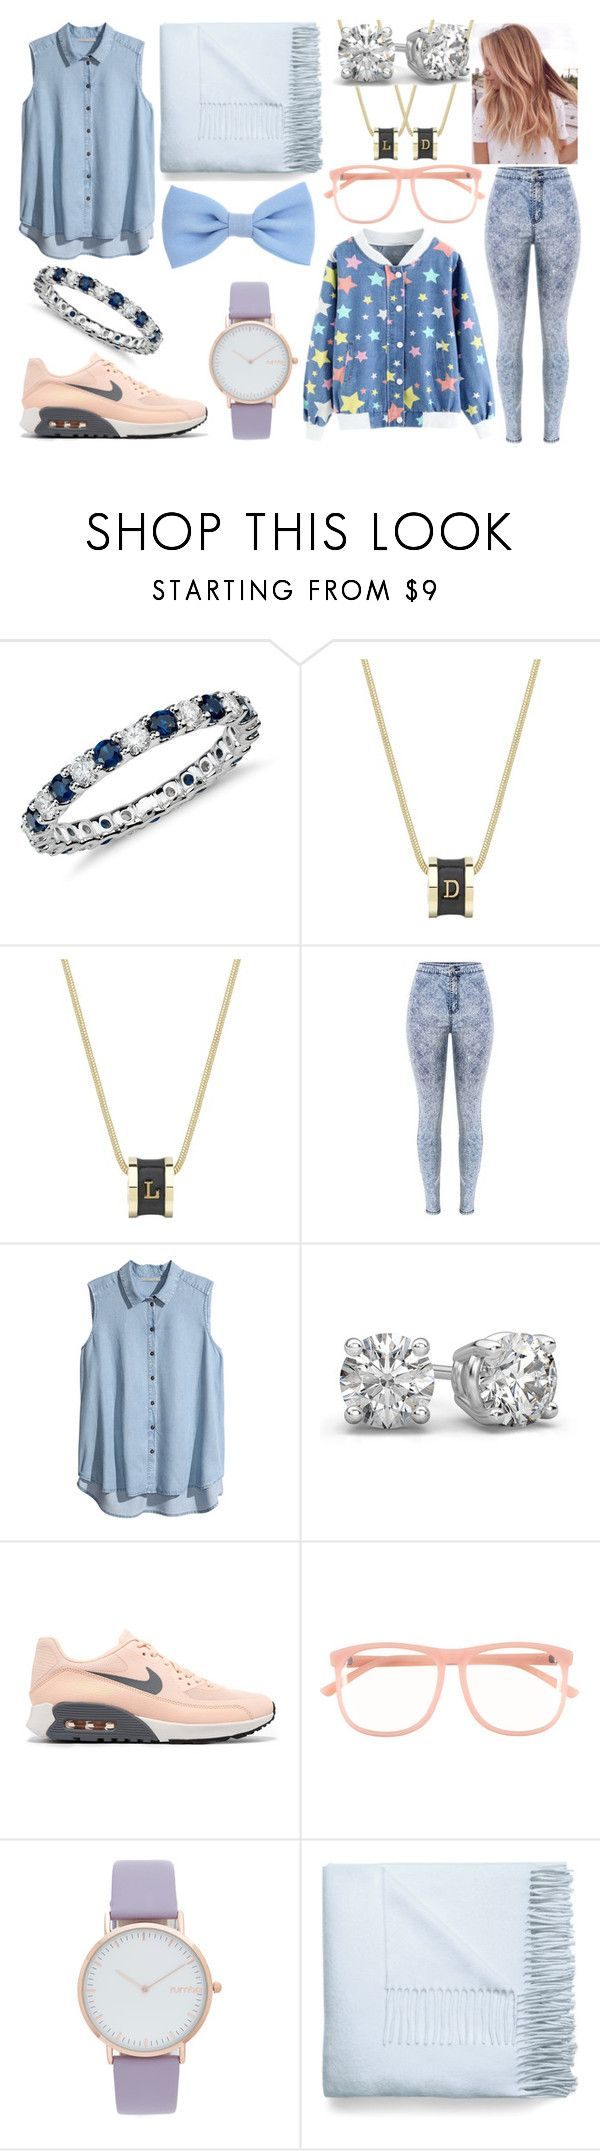 """""""#95"""" by shadouww ❤ liked on Polyvore featuring Blue Nile, Whistle & Bango, H&M, NIKE, RumbaTime and Acne Studios"""